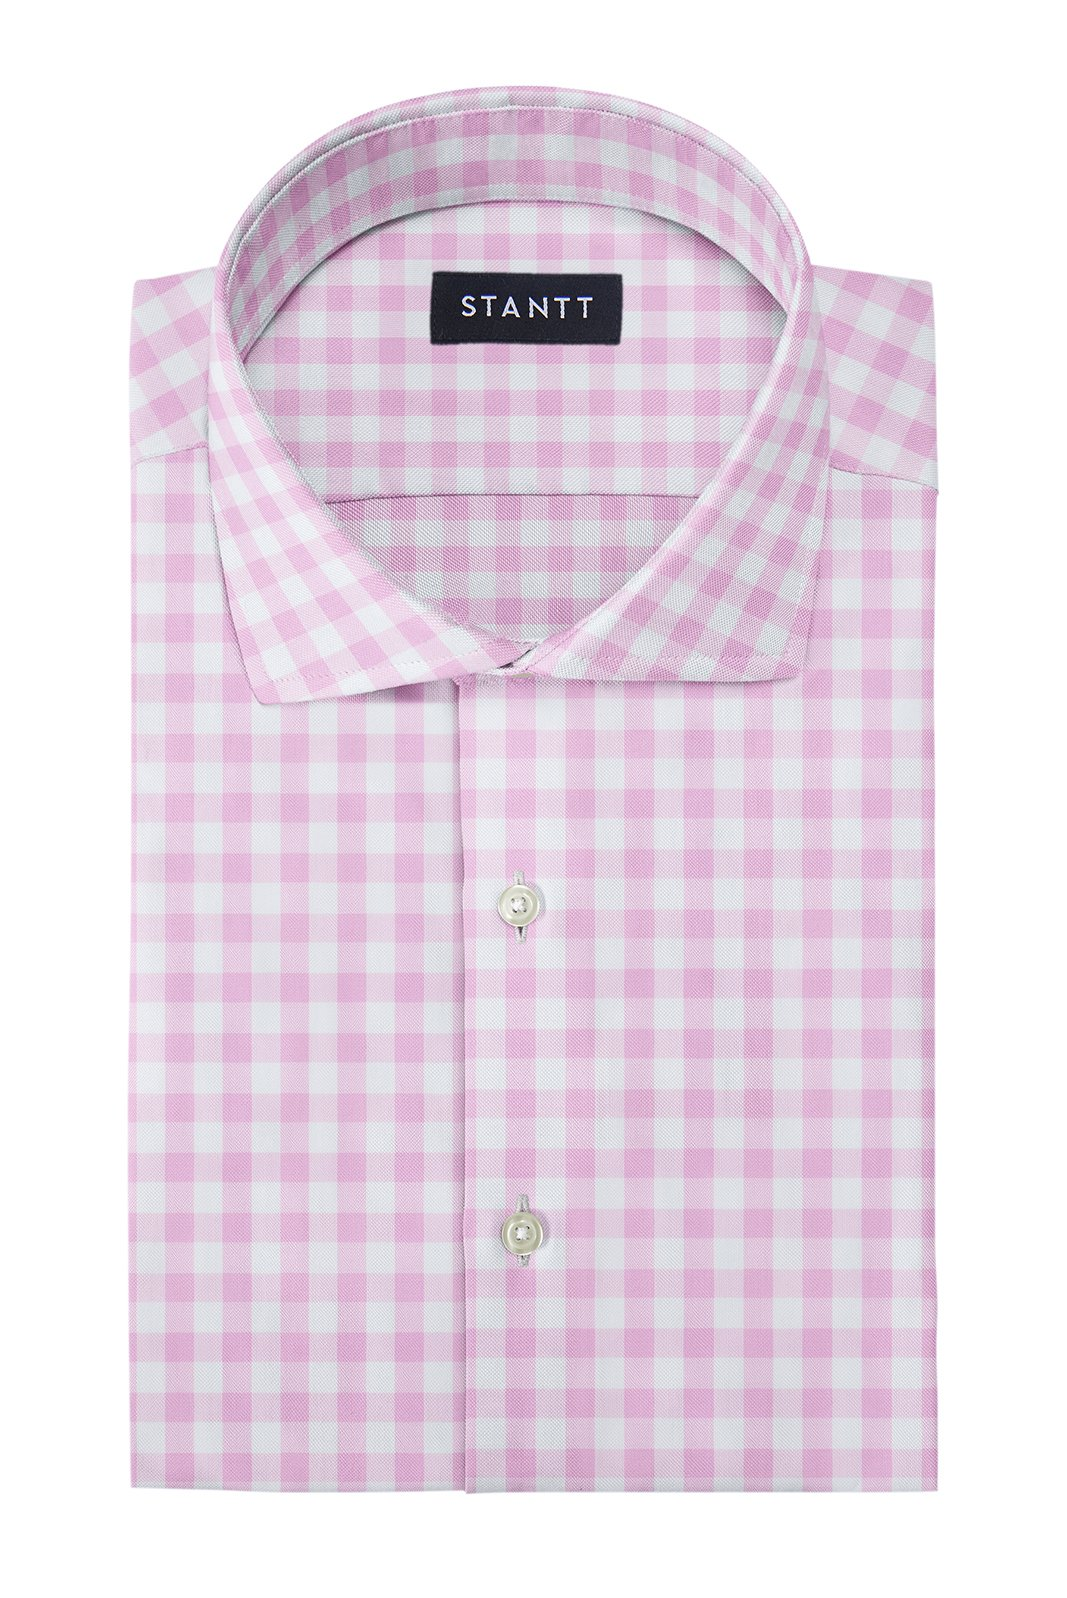 Duca Pink Gingham: Cutaway Collar, French Cuff